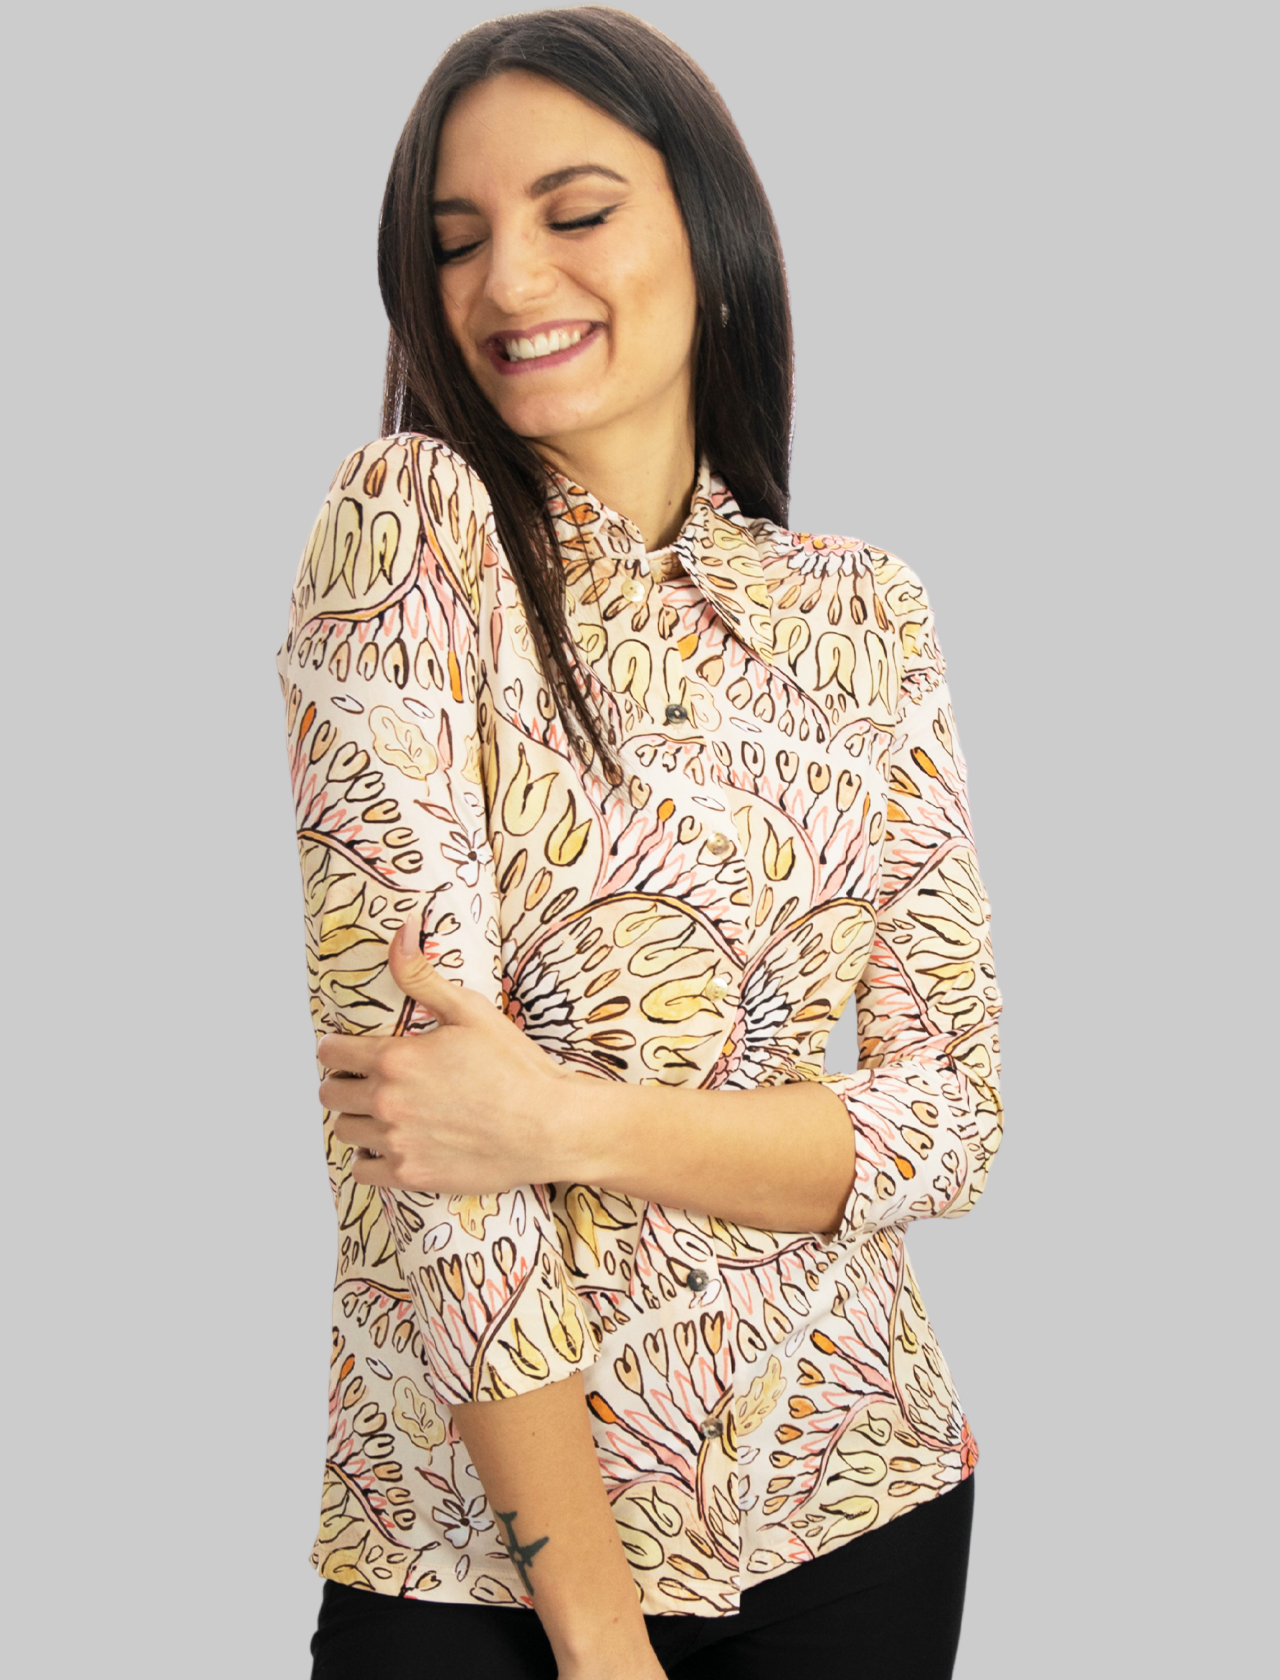 Women's Clothing Shirt Welcome Summer Jersey with Beige Pattern Maliparmi | Shirts and tops | JM542270407B1228